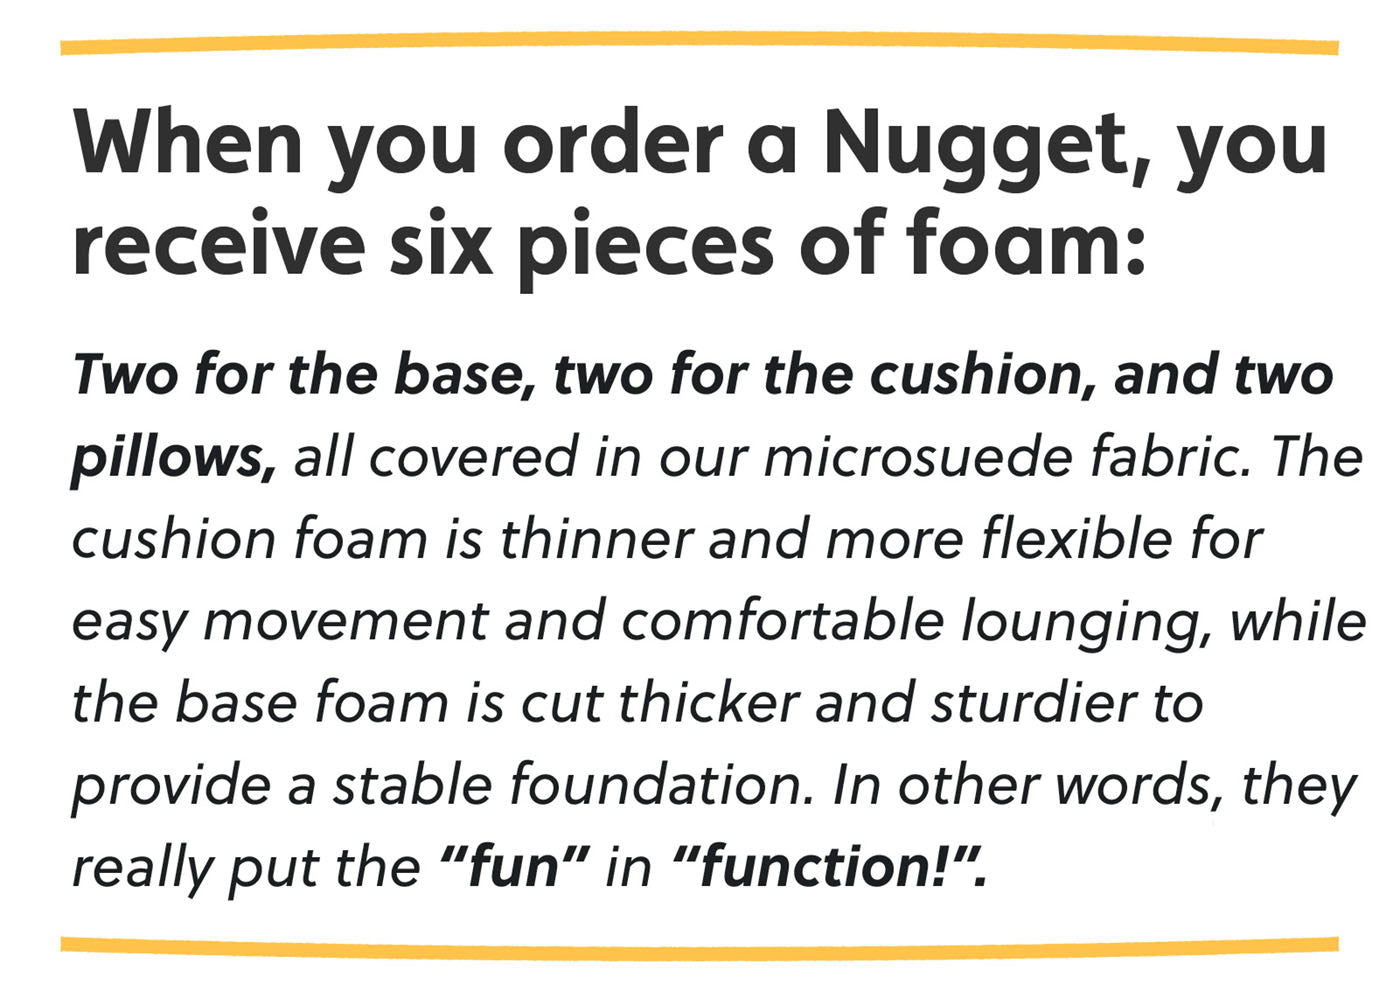 """When you order a Nugget, you receive six pieces of foam: two for the base, two for the cushion, and two pillows, all covered in our microsuede fabric. The cushion foam is thinner and more flexible for easy movement and comfortable lounging, while the base foam is cut thicker and sturdier to provide a stable foundation. In other words, they really put the """"fun"""" in """"function!"""